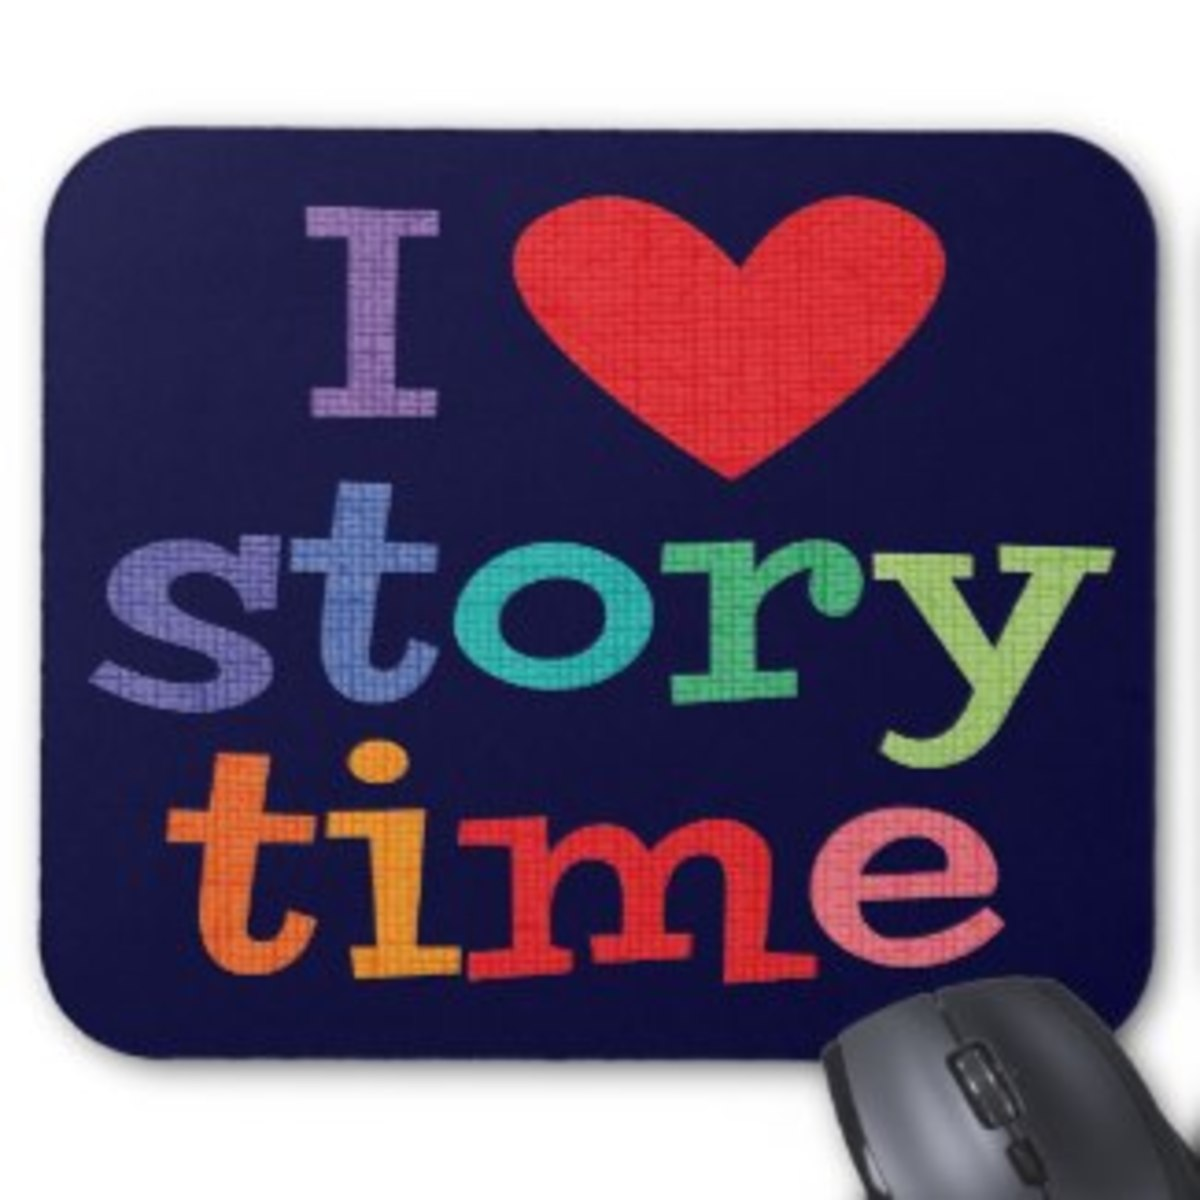 Yes, I LOVE storytime. What a great gift for a children's librarian.